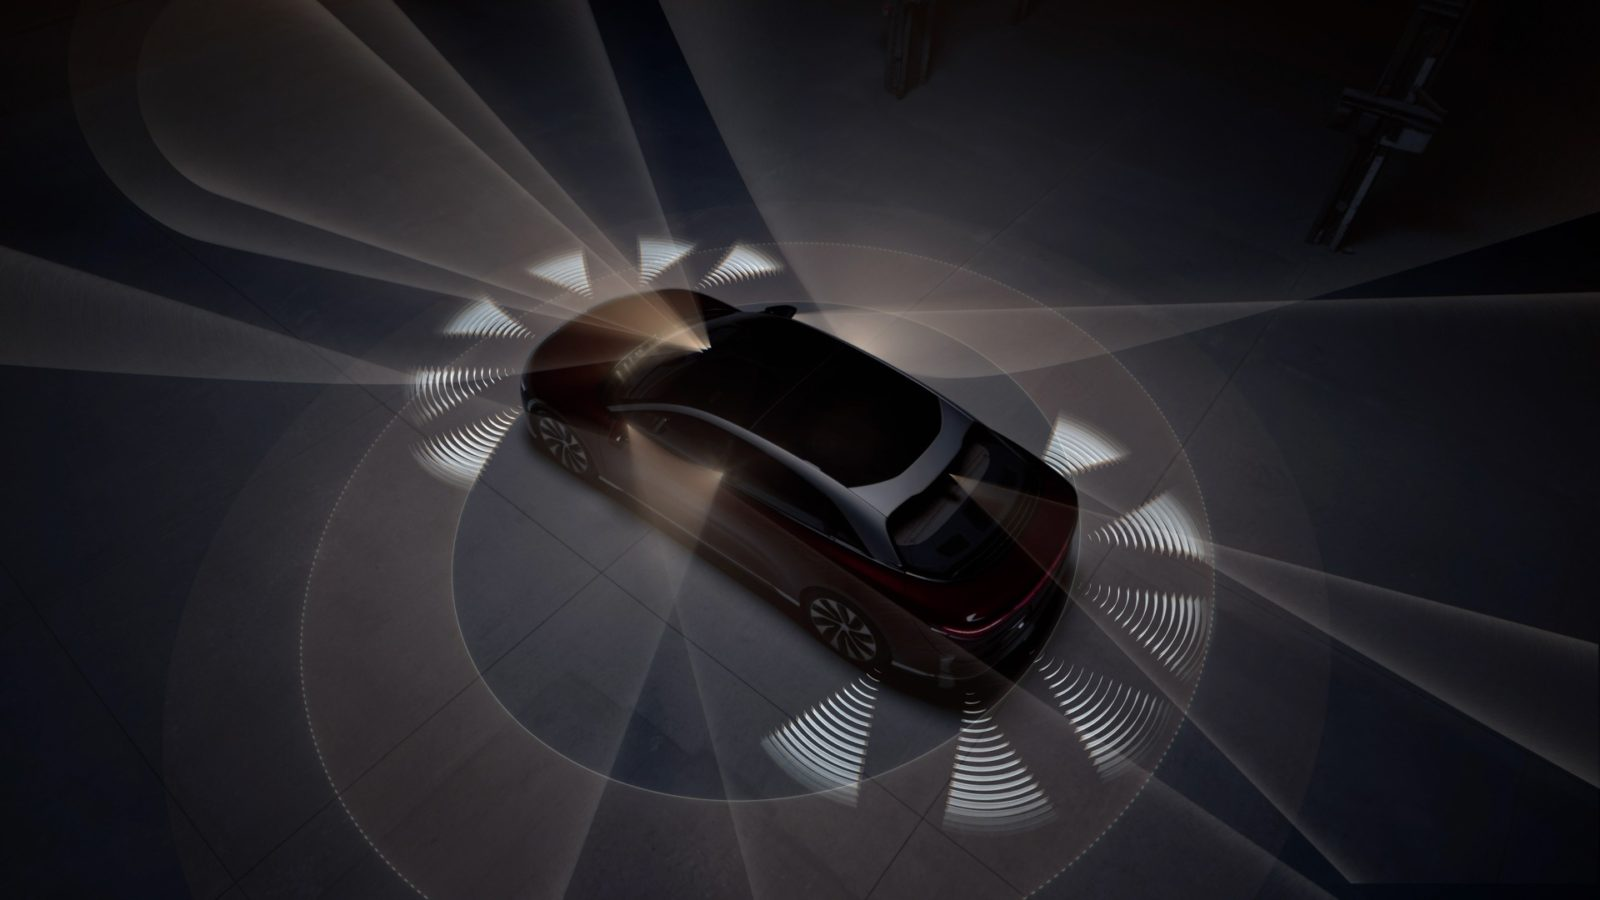 lucid's-dreamdrive-driver-assist-system-features-lidar,-promises-hands-free-highway-driving